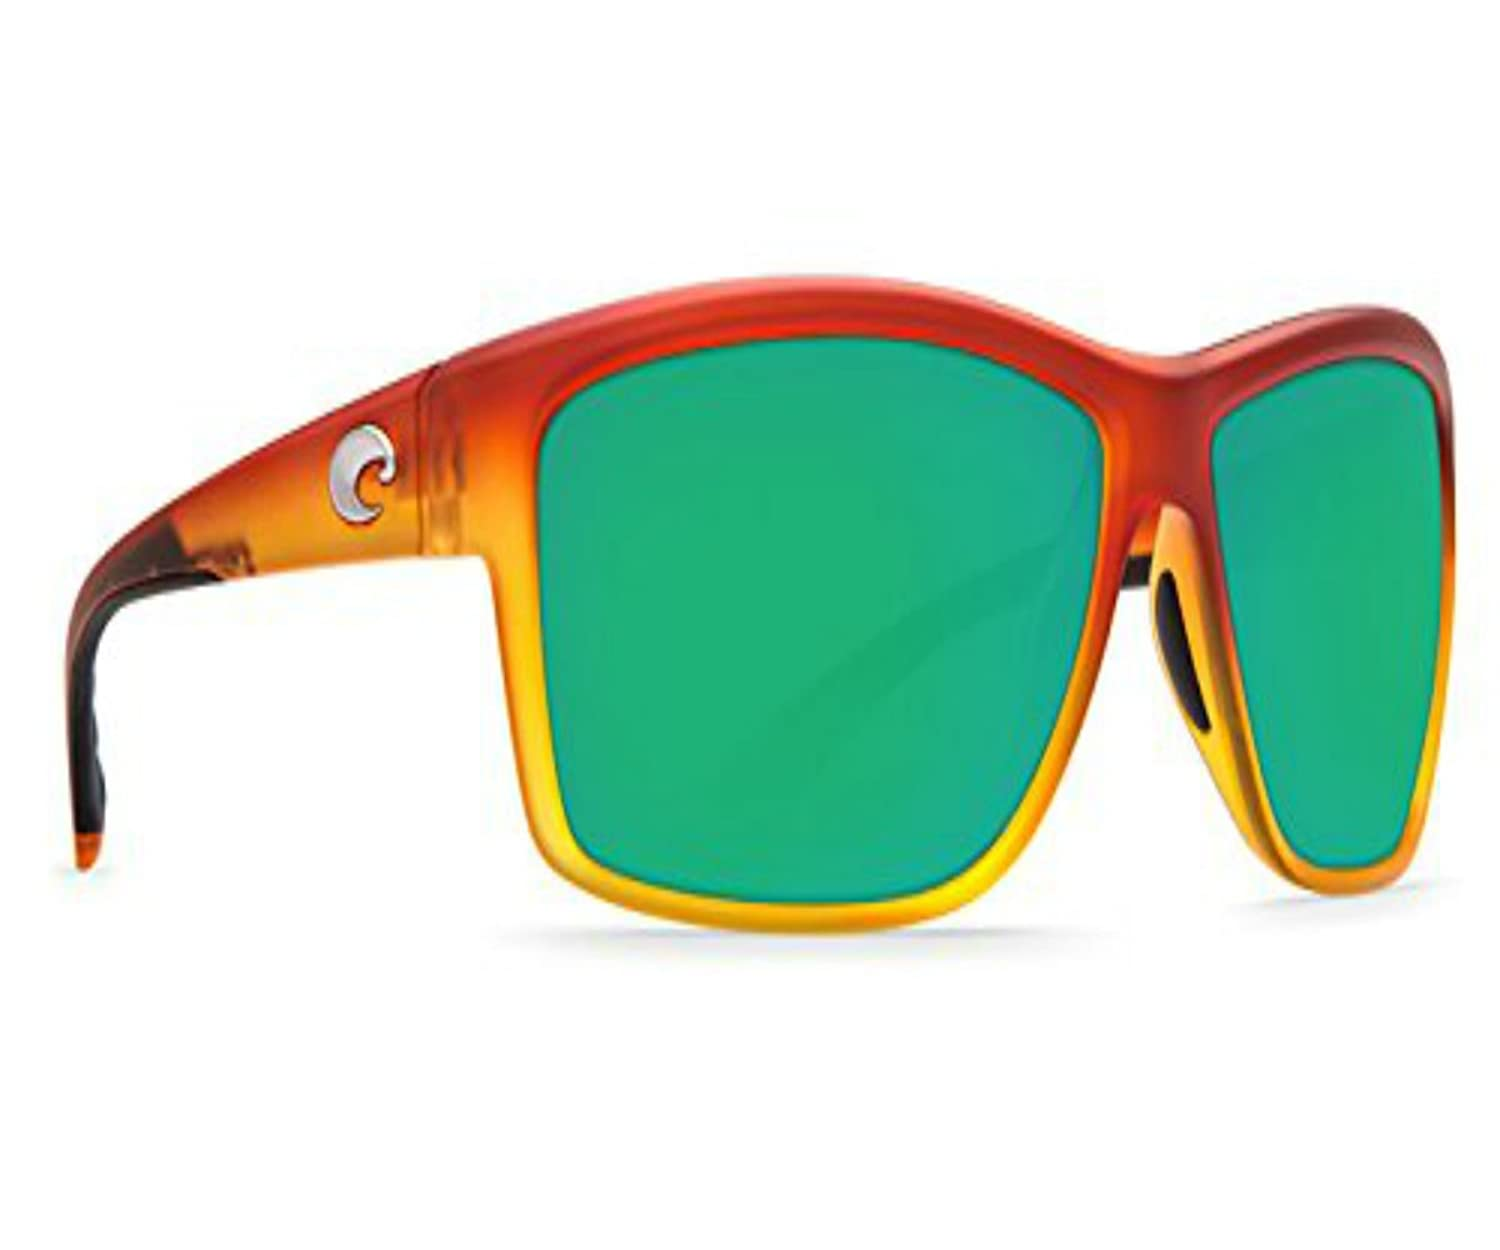 Amazon.com: Costa Del Mar Mag bay AA 79 Matte Sunset Fade Sunglasses for Mens - Size 400G (Green Mirror Lens): Shoes